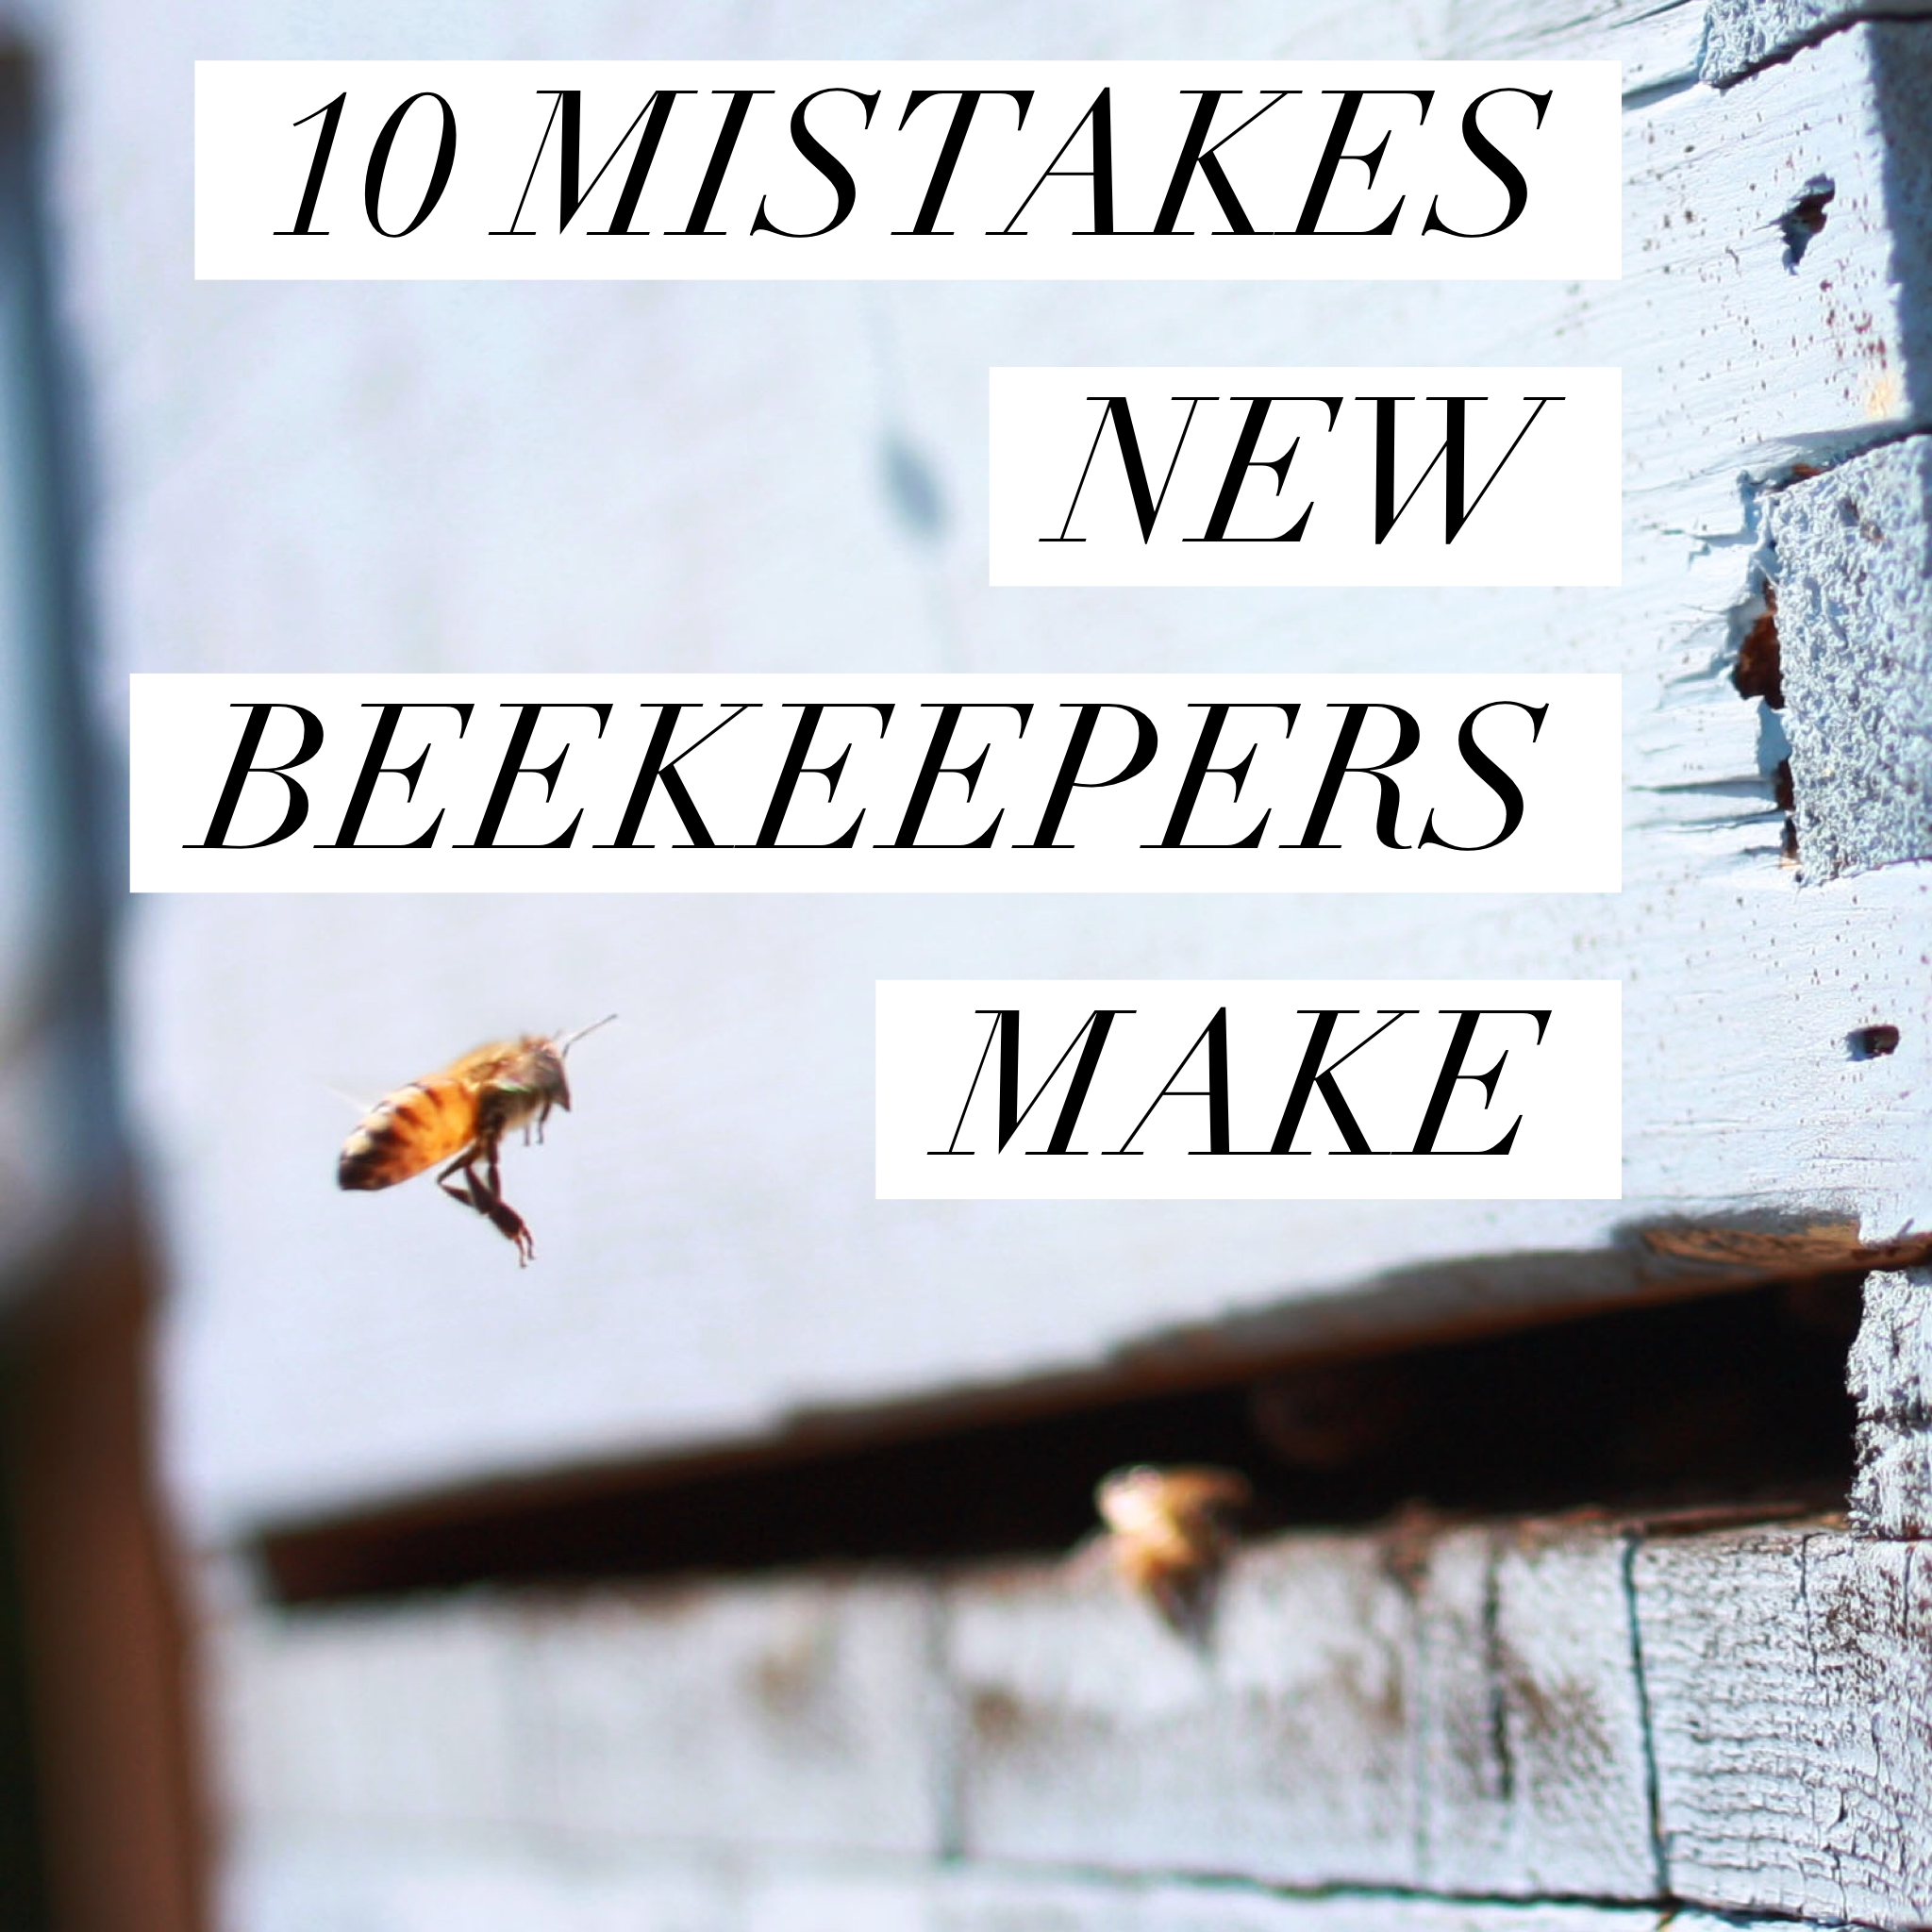 10 MISTAKES NEW BEEKEEPERS MAKE - Beekeeping Like A Girl